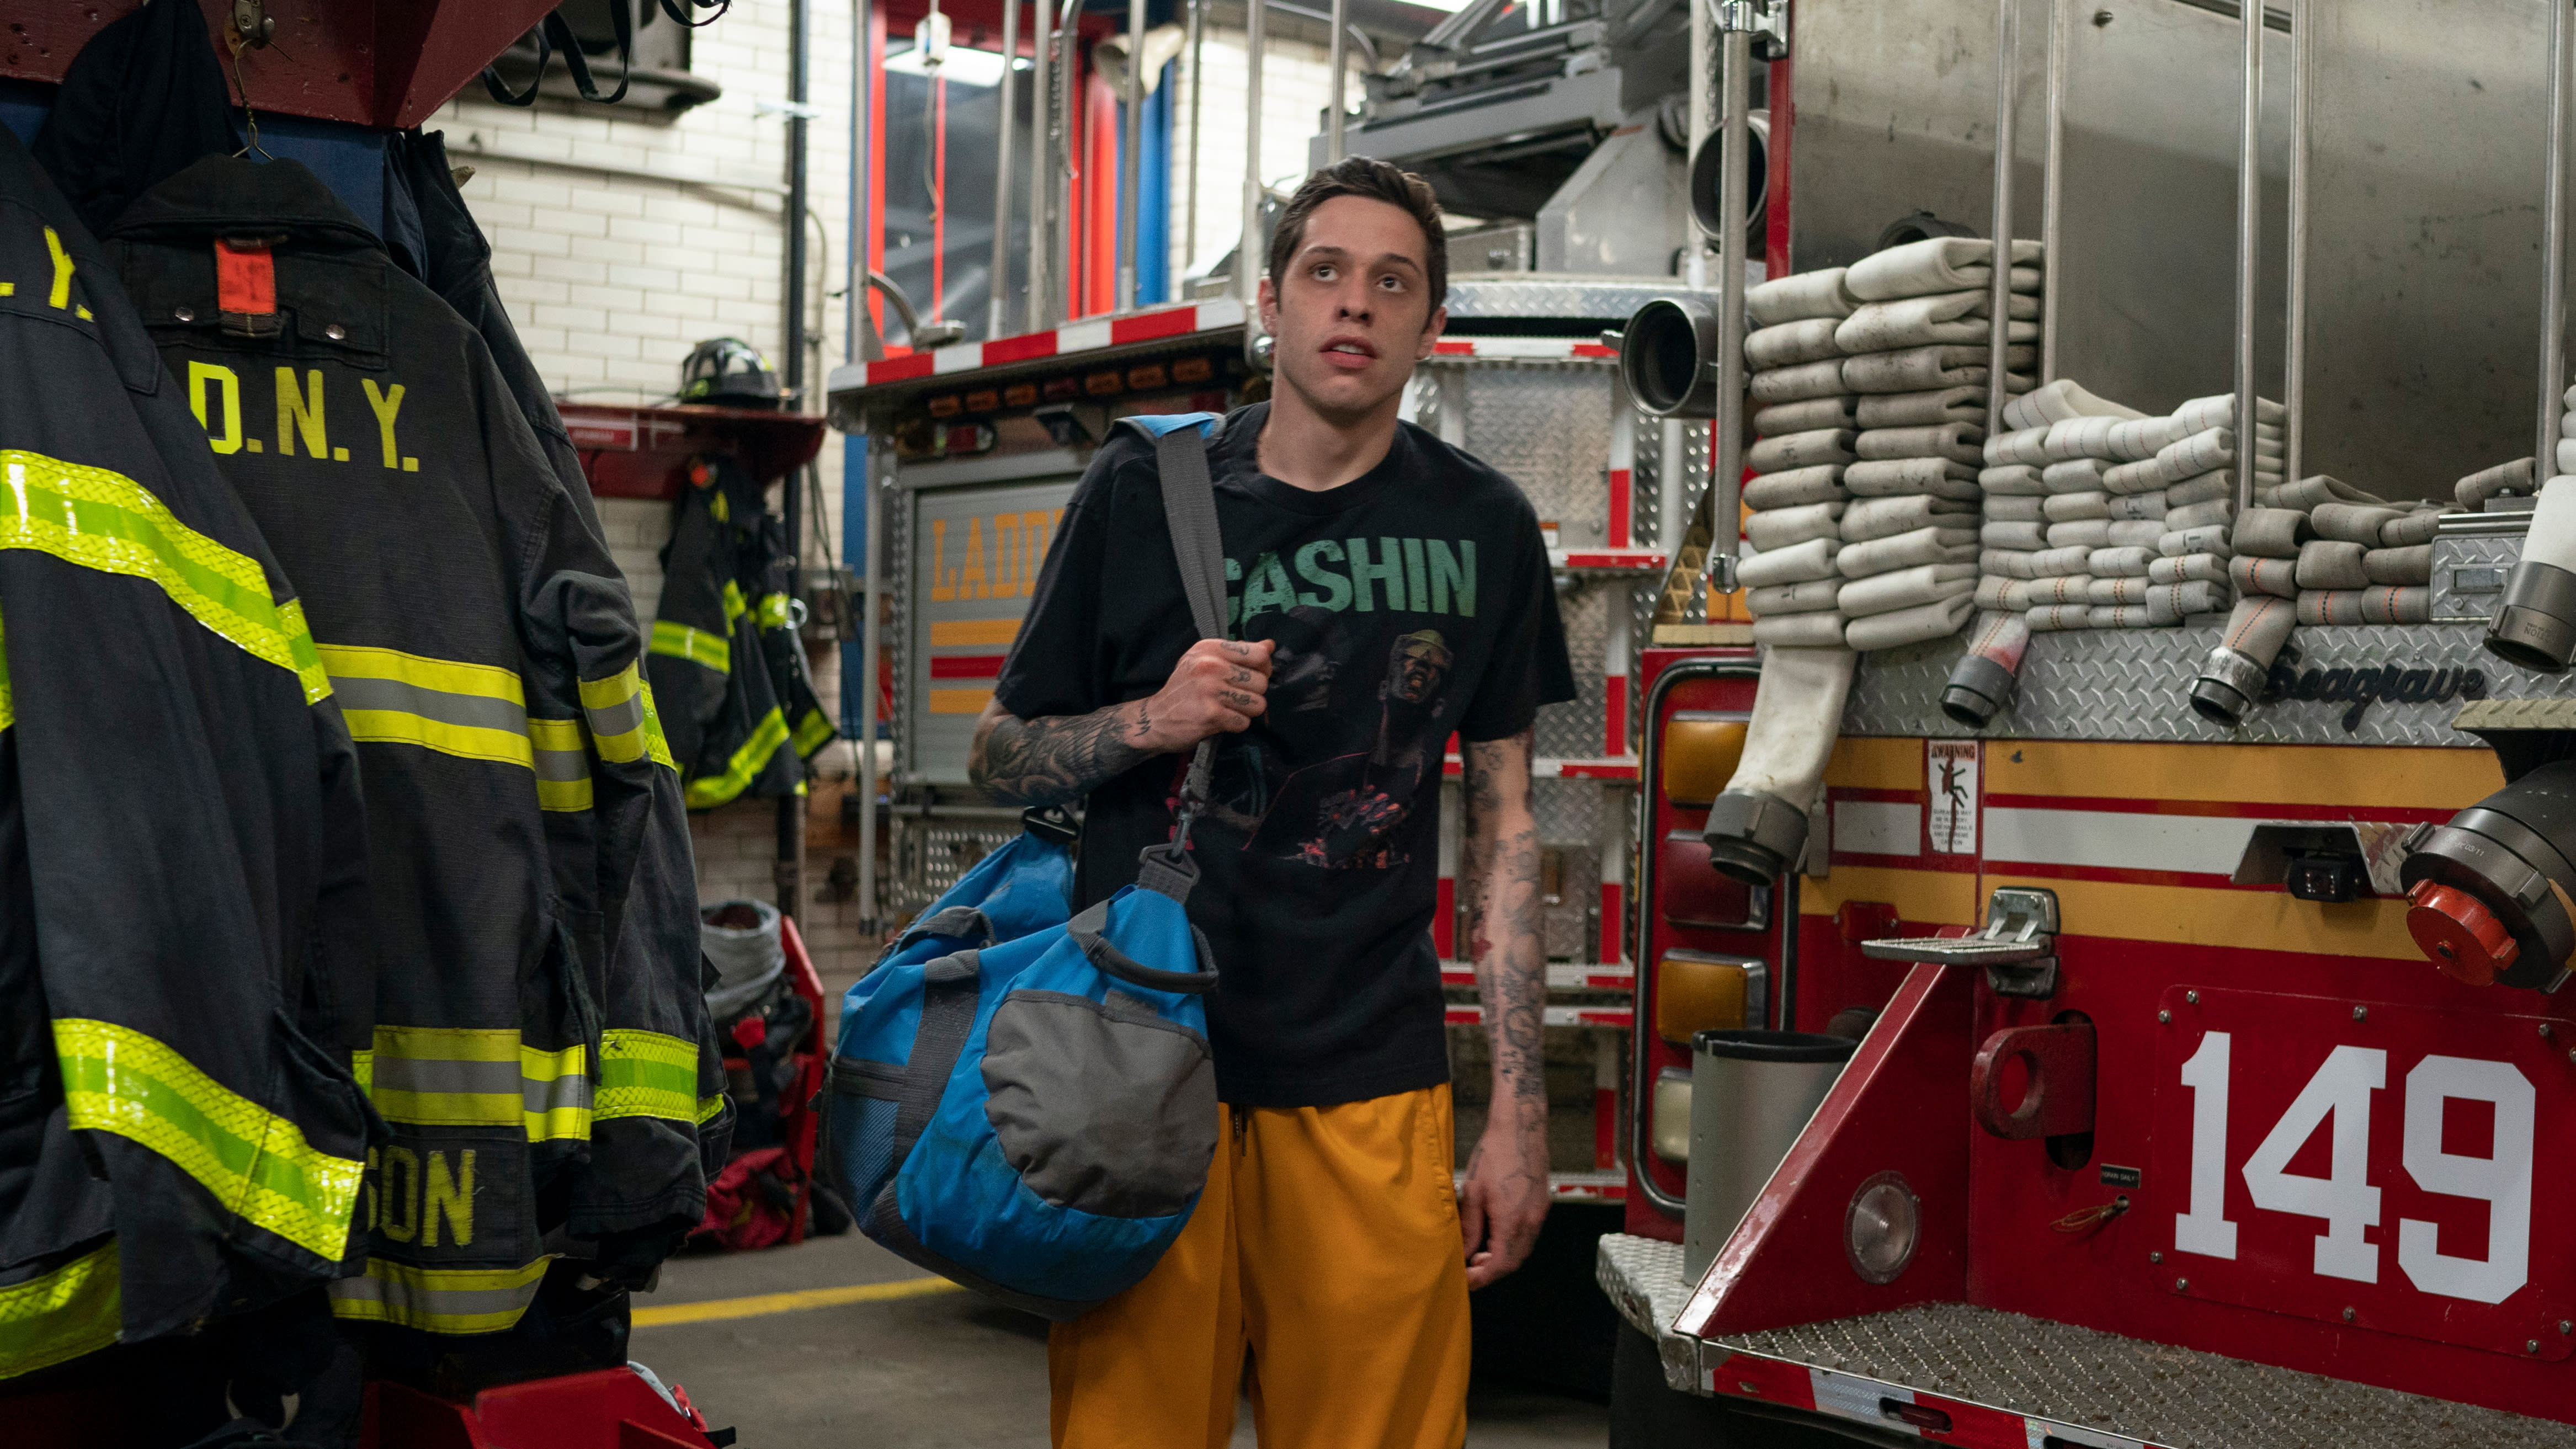 Pete Davidson as Scott Carlin in 'The King of Staten Island', directed by Judd Apatow. (Credit: Mary Cybulski/Universal)